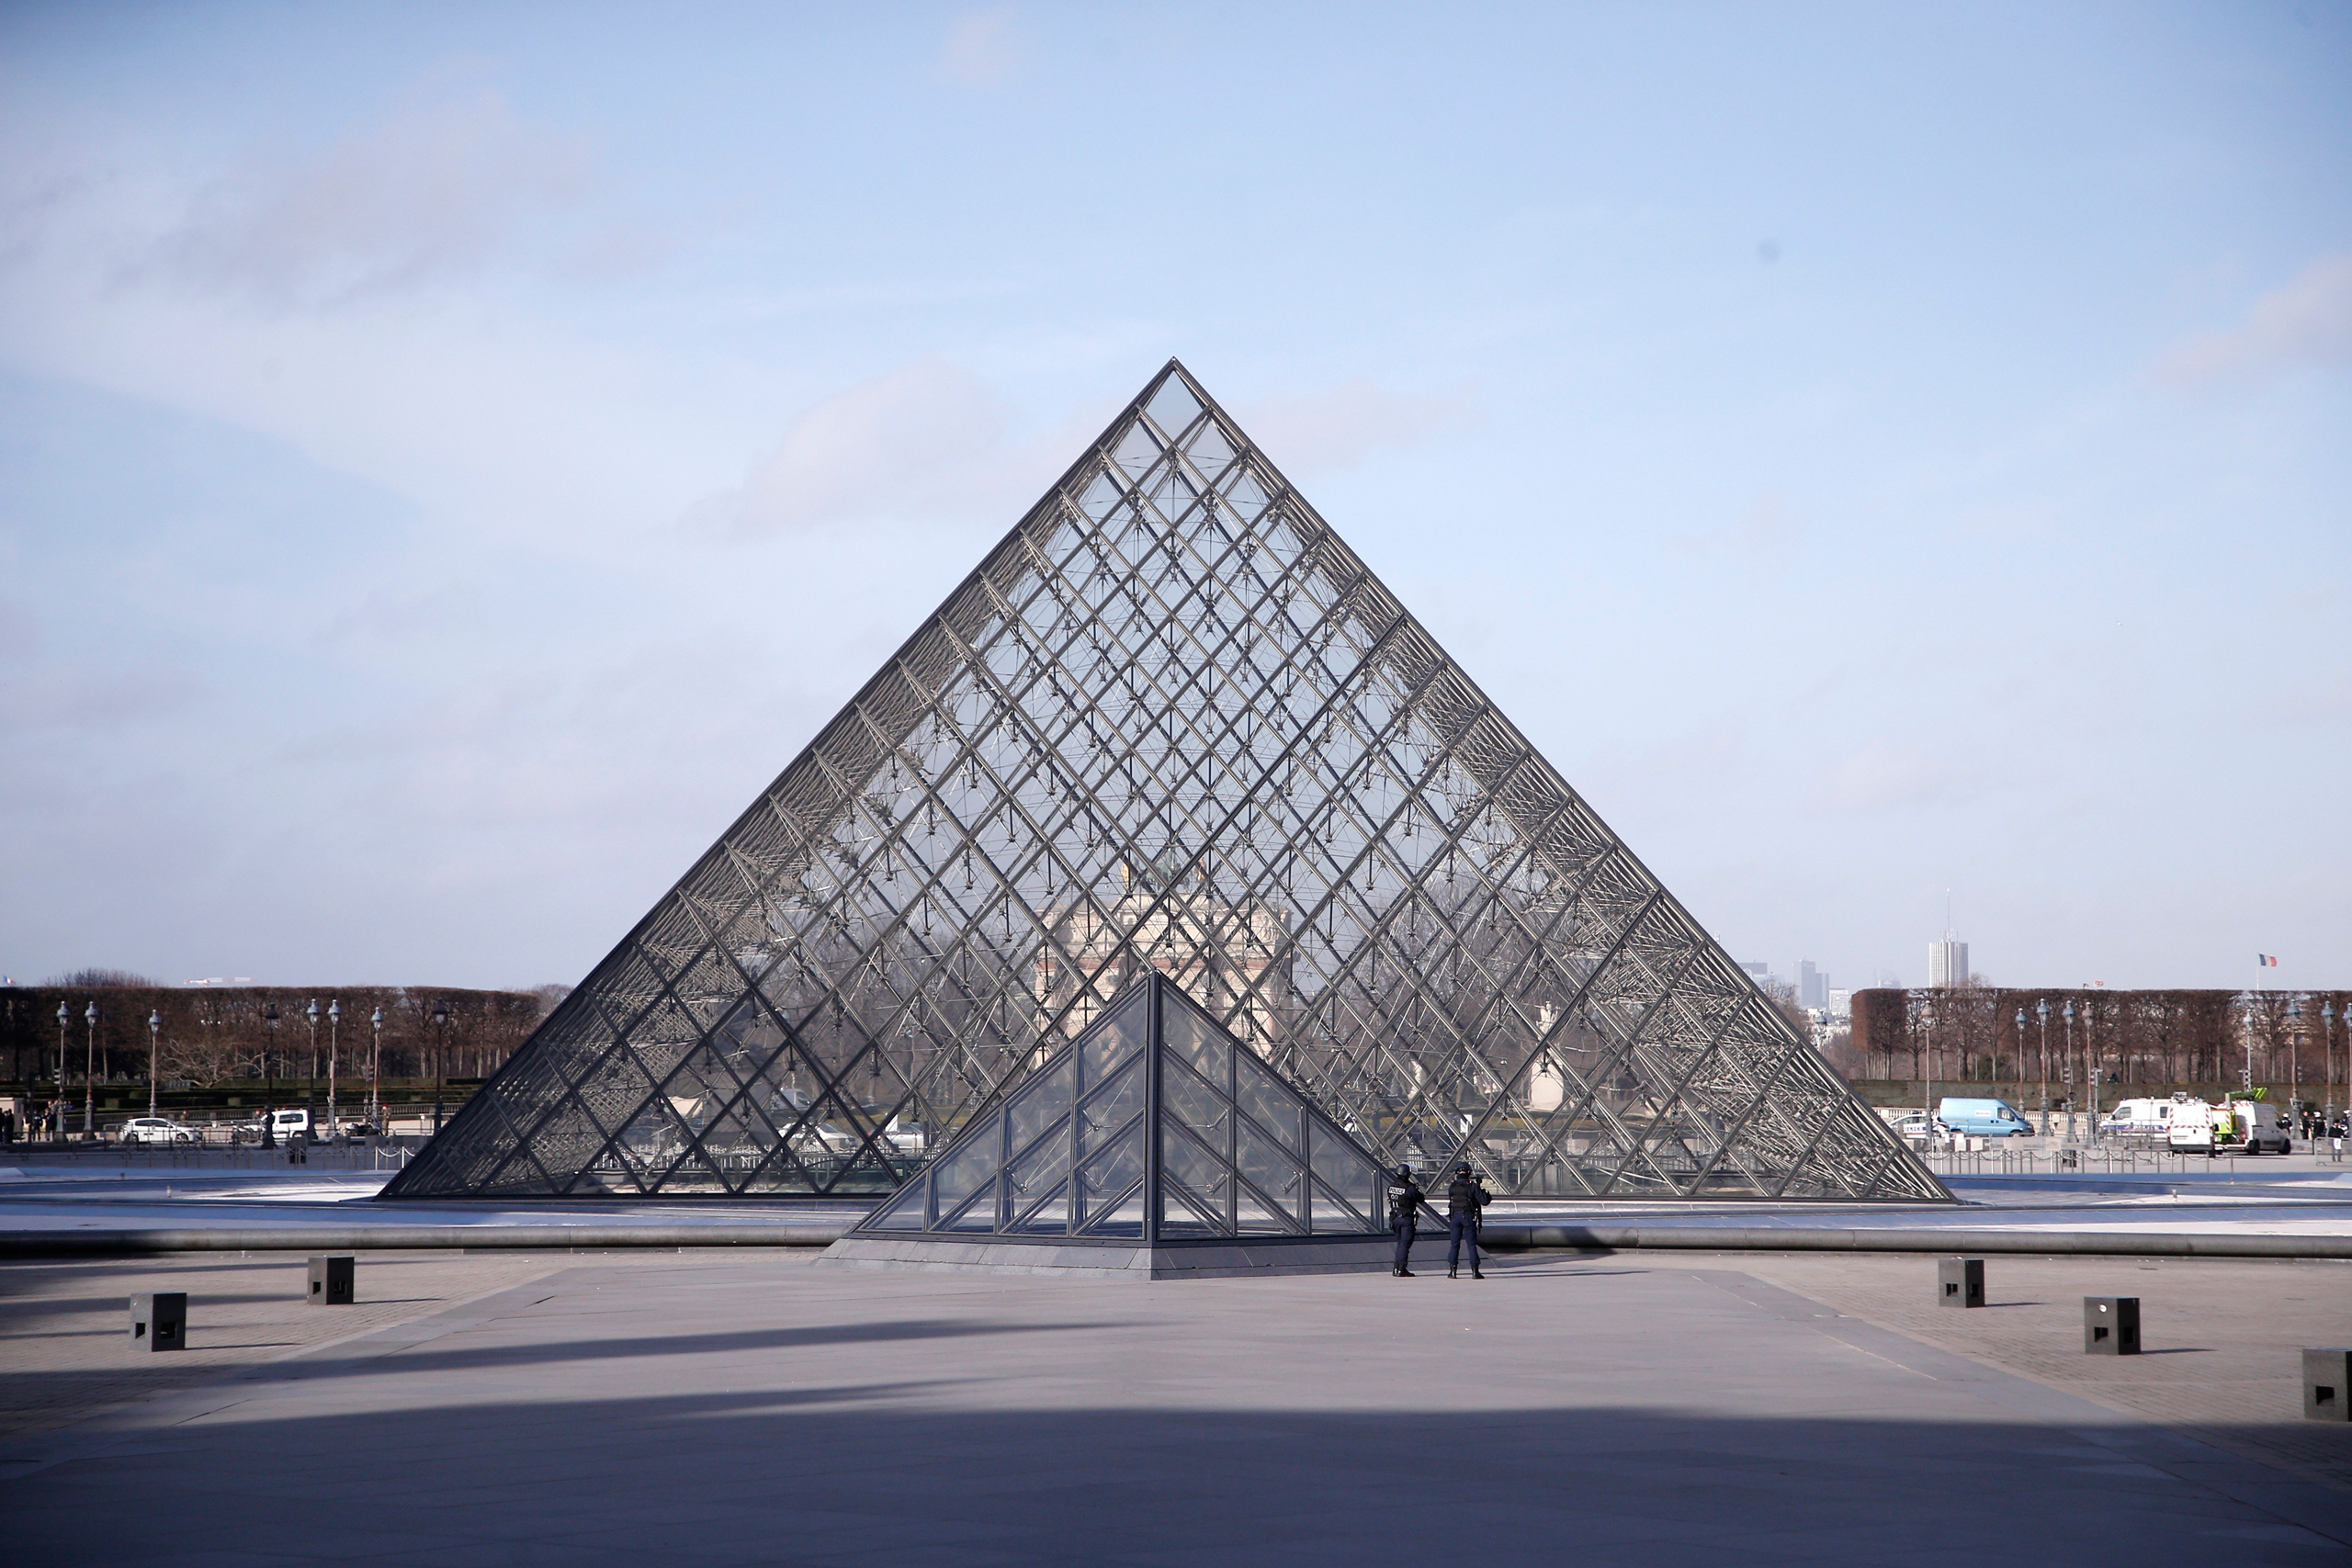 The Louvre Pyramid, one of I.M. Pei's greatest designs.